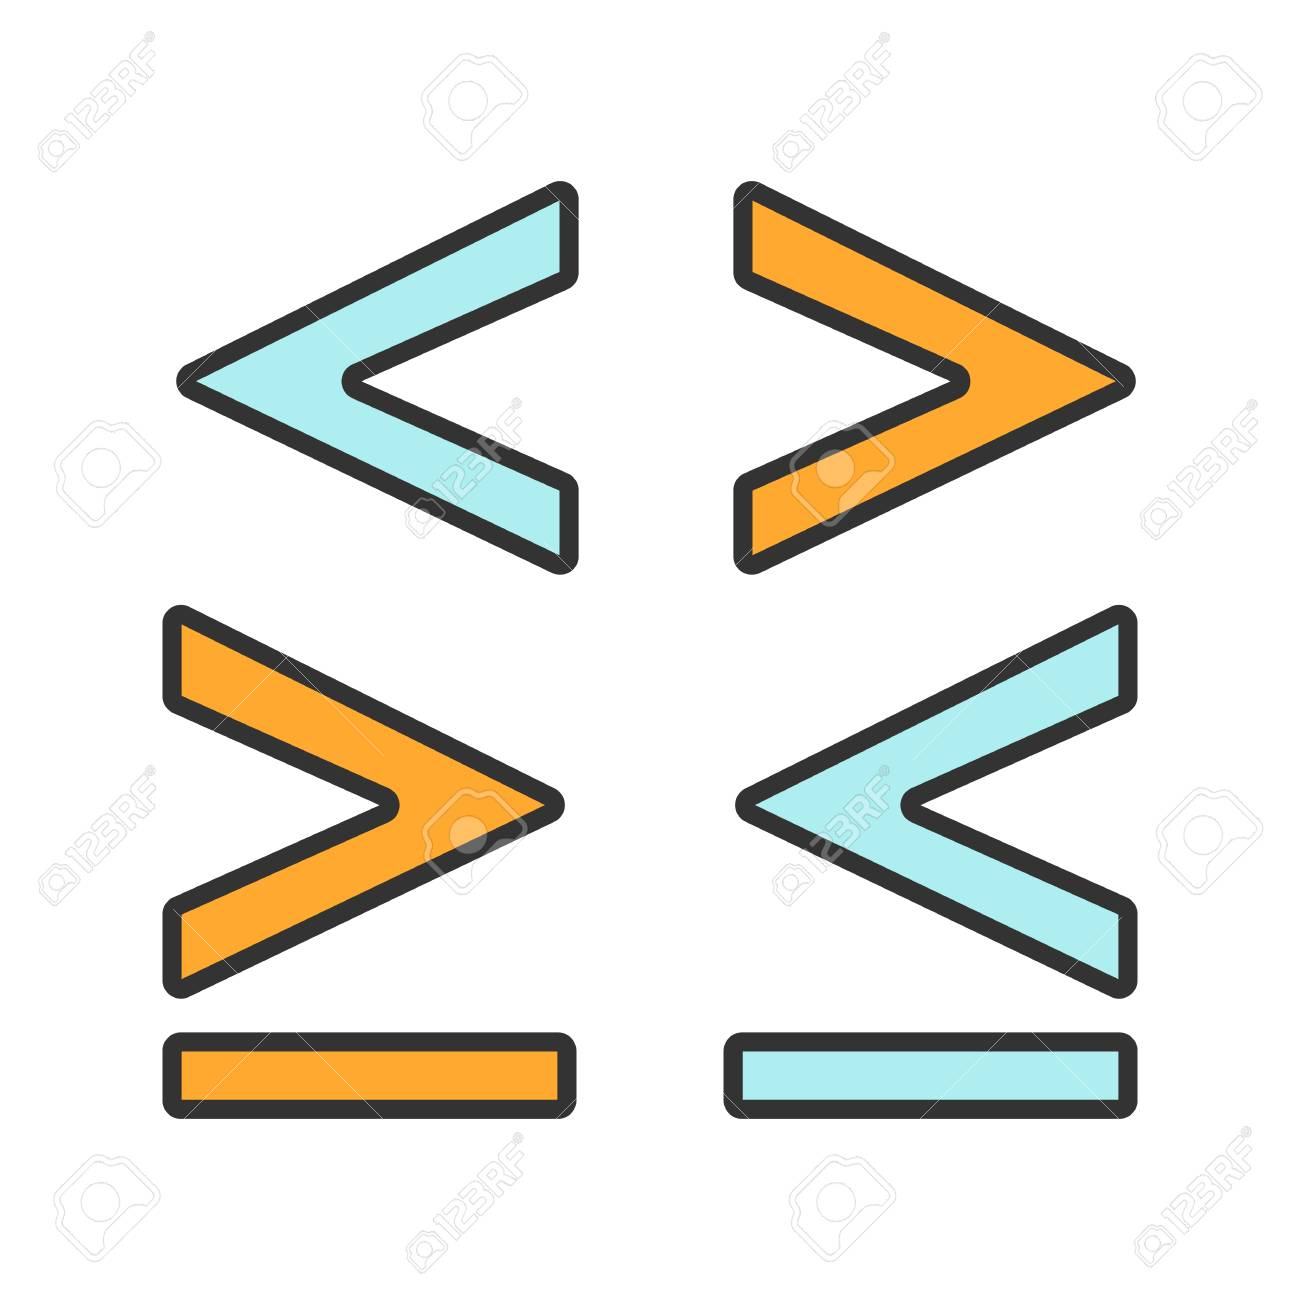 Math Symbols Color Icon Is Less Greater Or Equal Than Signs Royalty Free Cliparts Vectors And Stock Illustration Image 105953528